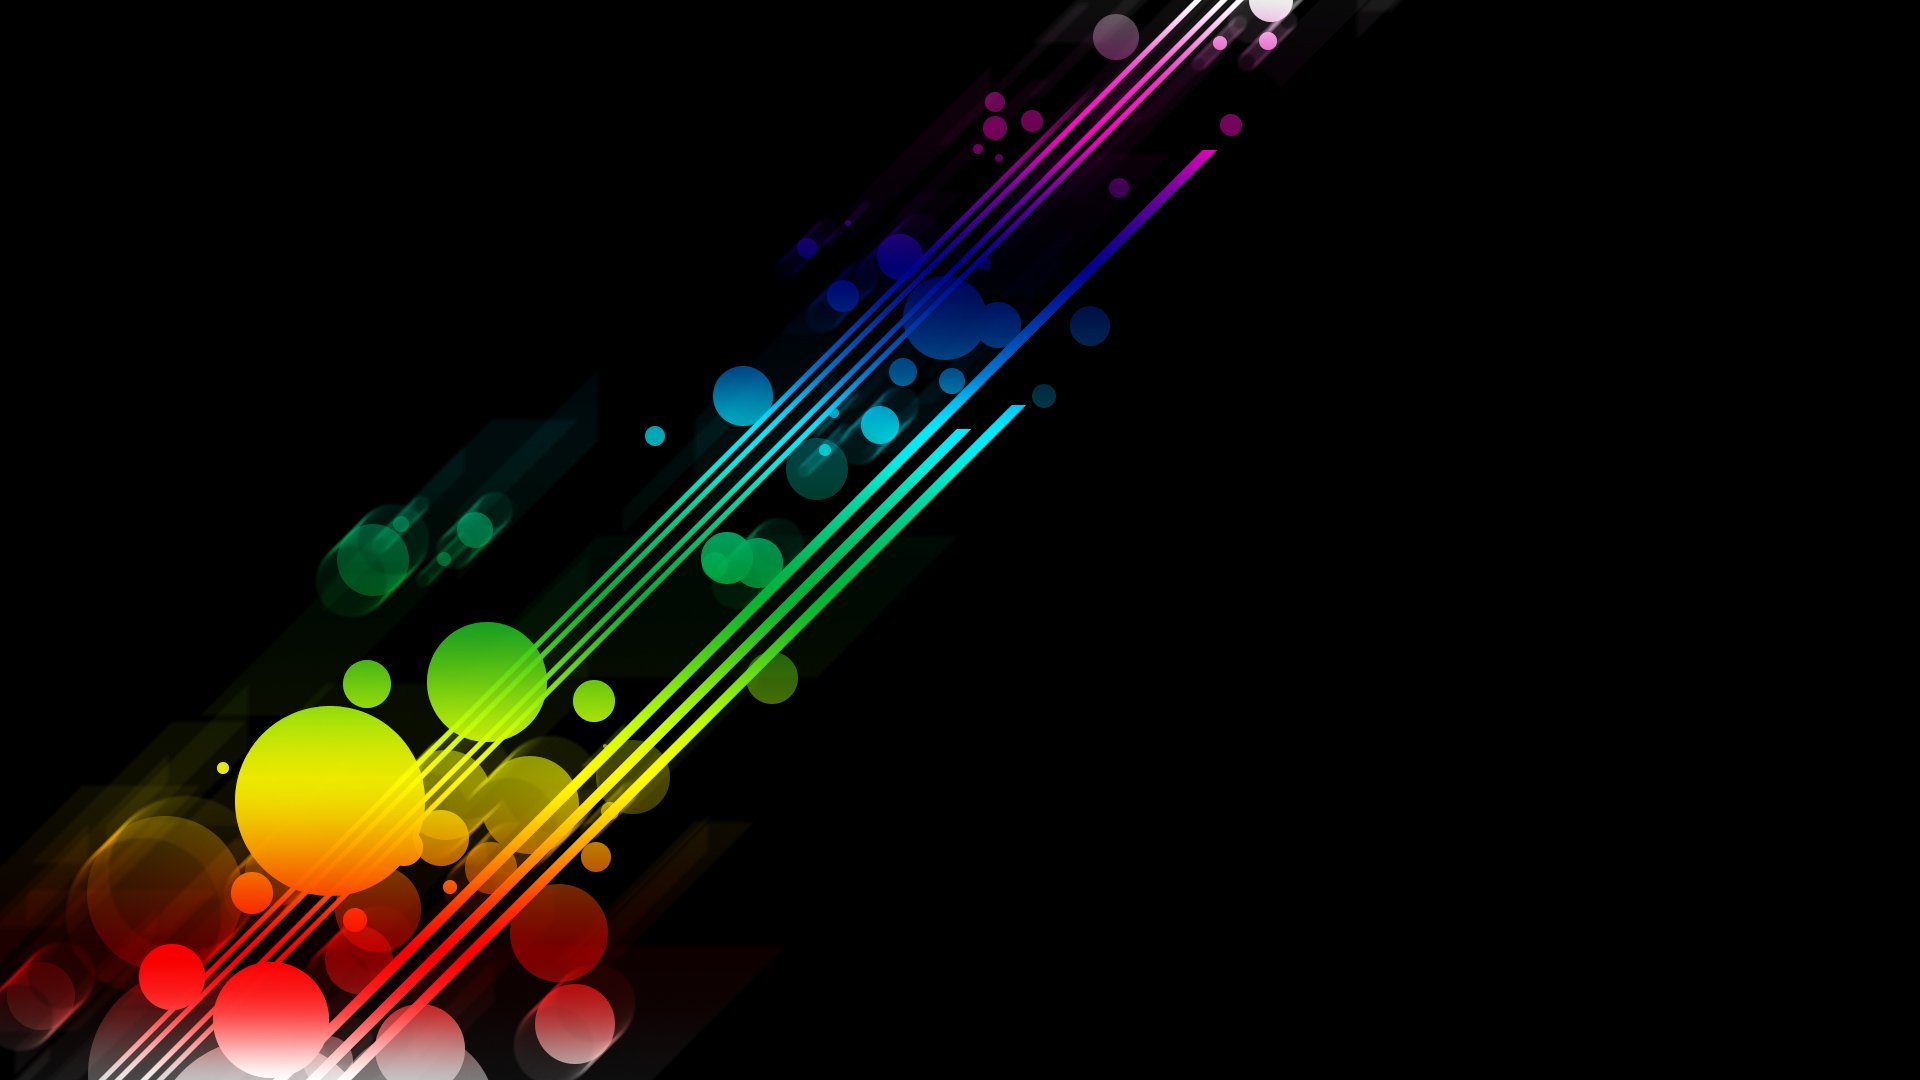 Best Wallpaper Music Rainbow - black-rainbows-background-minimalistic-wallpaper-desktop-wallpapers-images-minimalist-PIC-MCH047569  You Should Have_51911.jpg